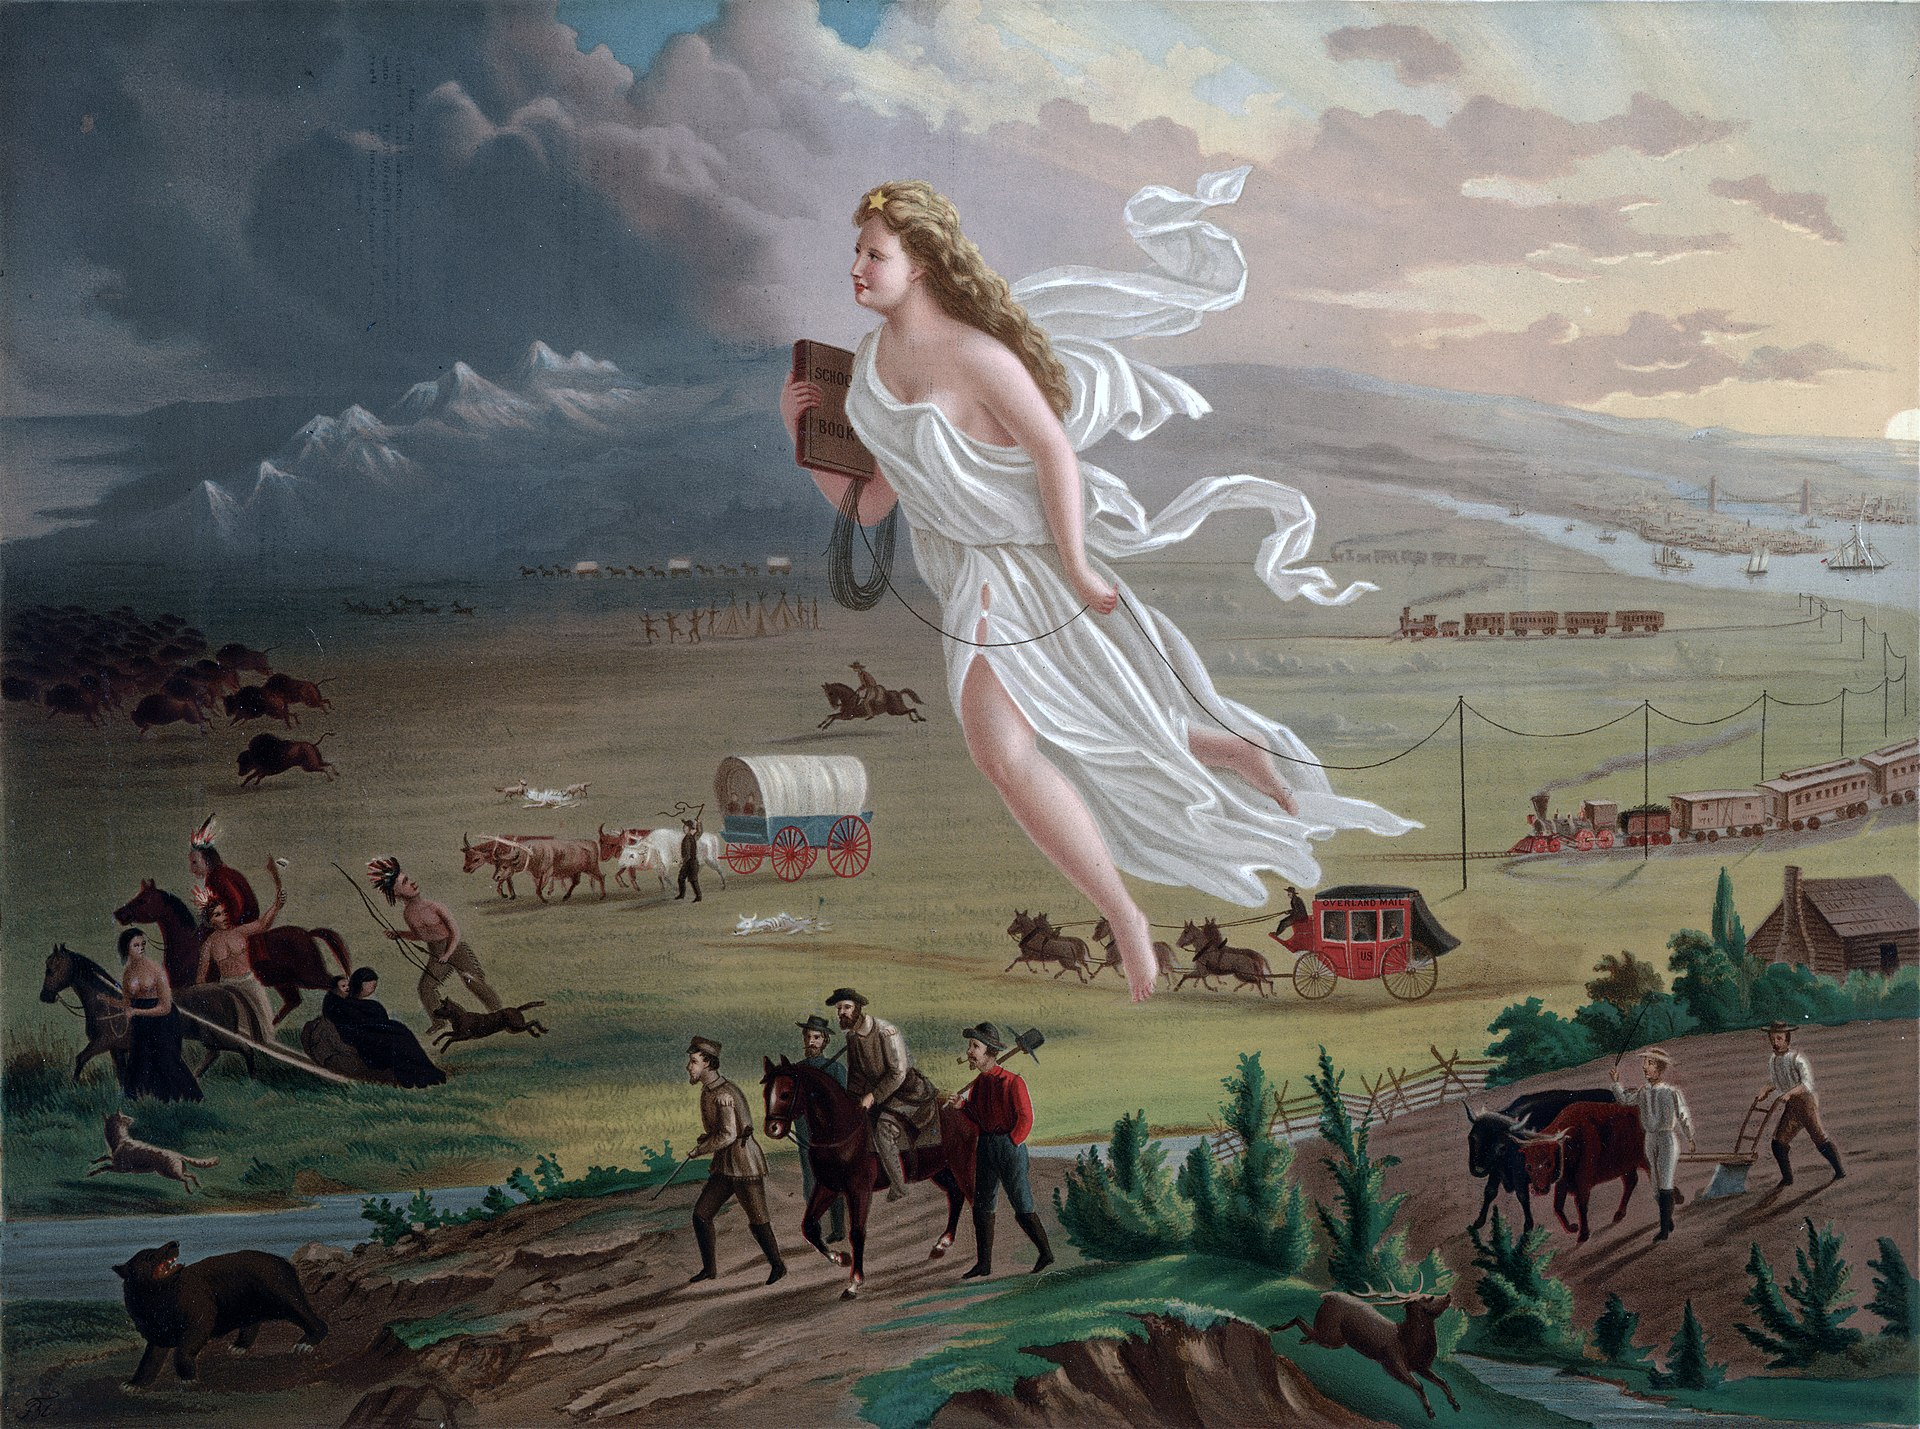 John Gast's iconic image of Columbia leading Americans west, 1872.